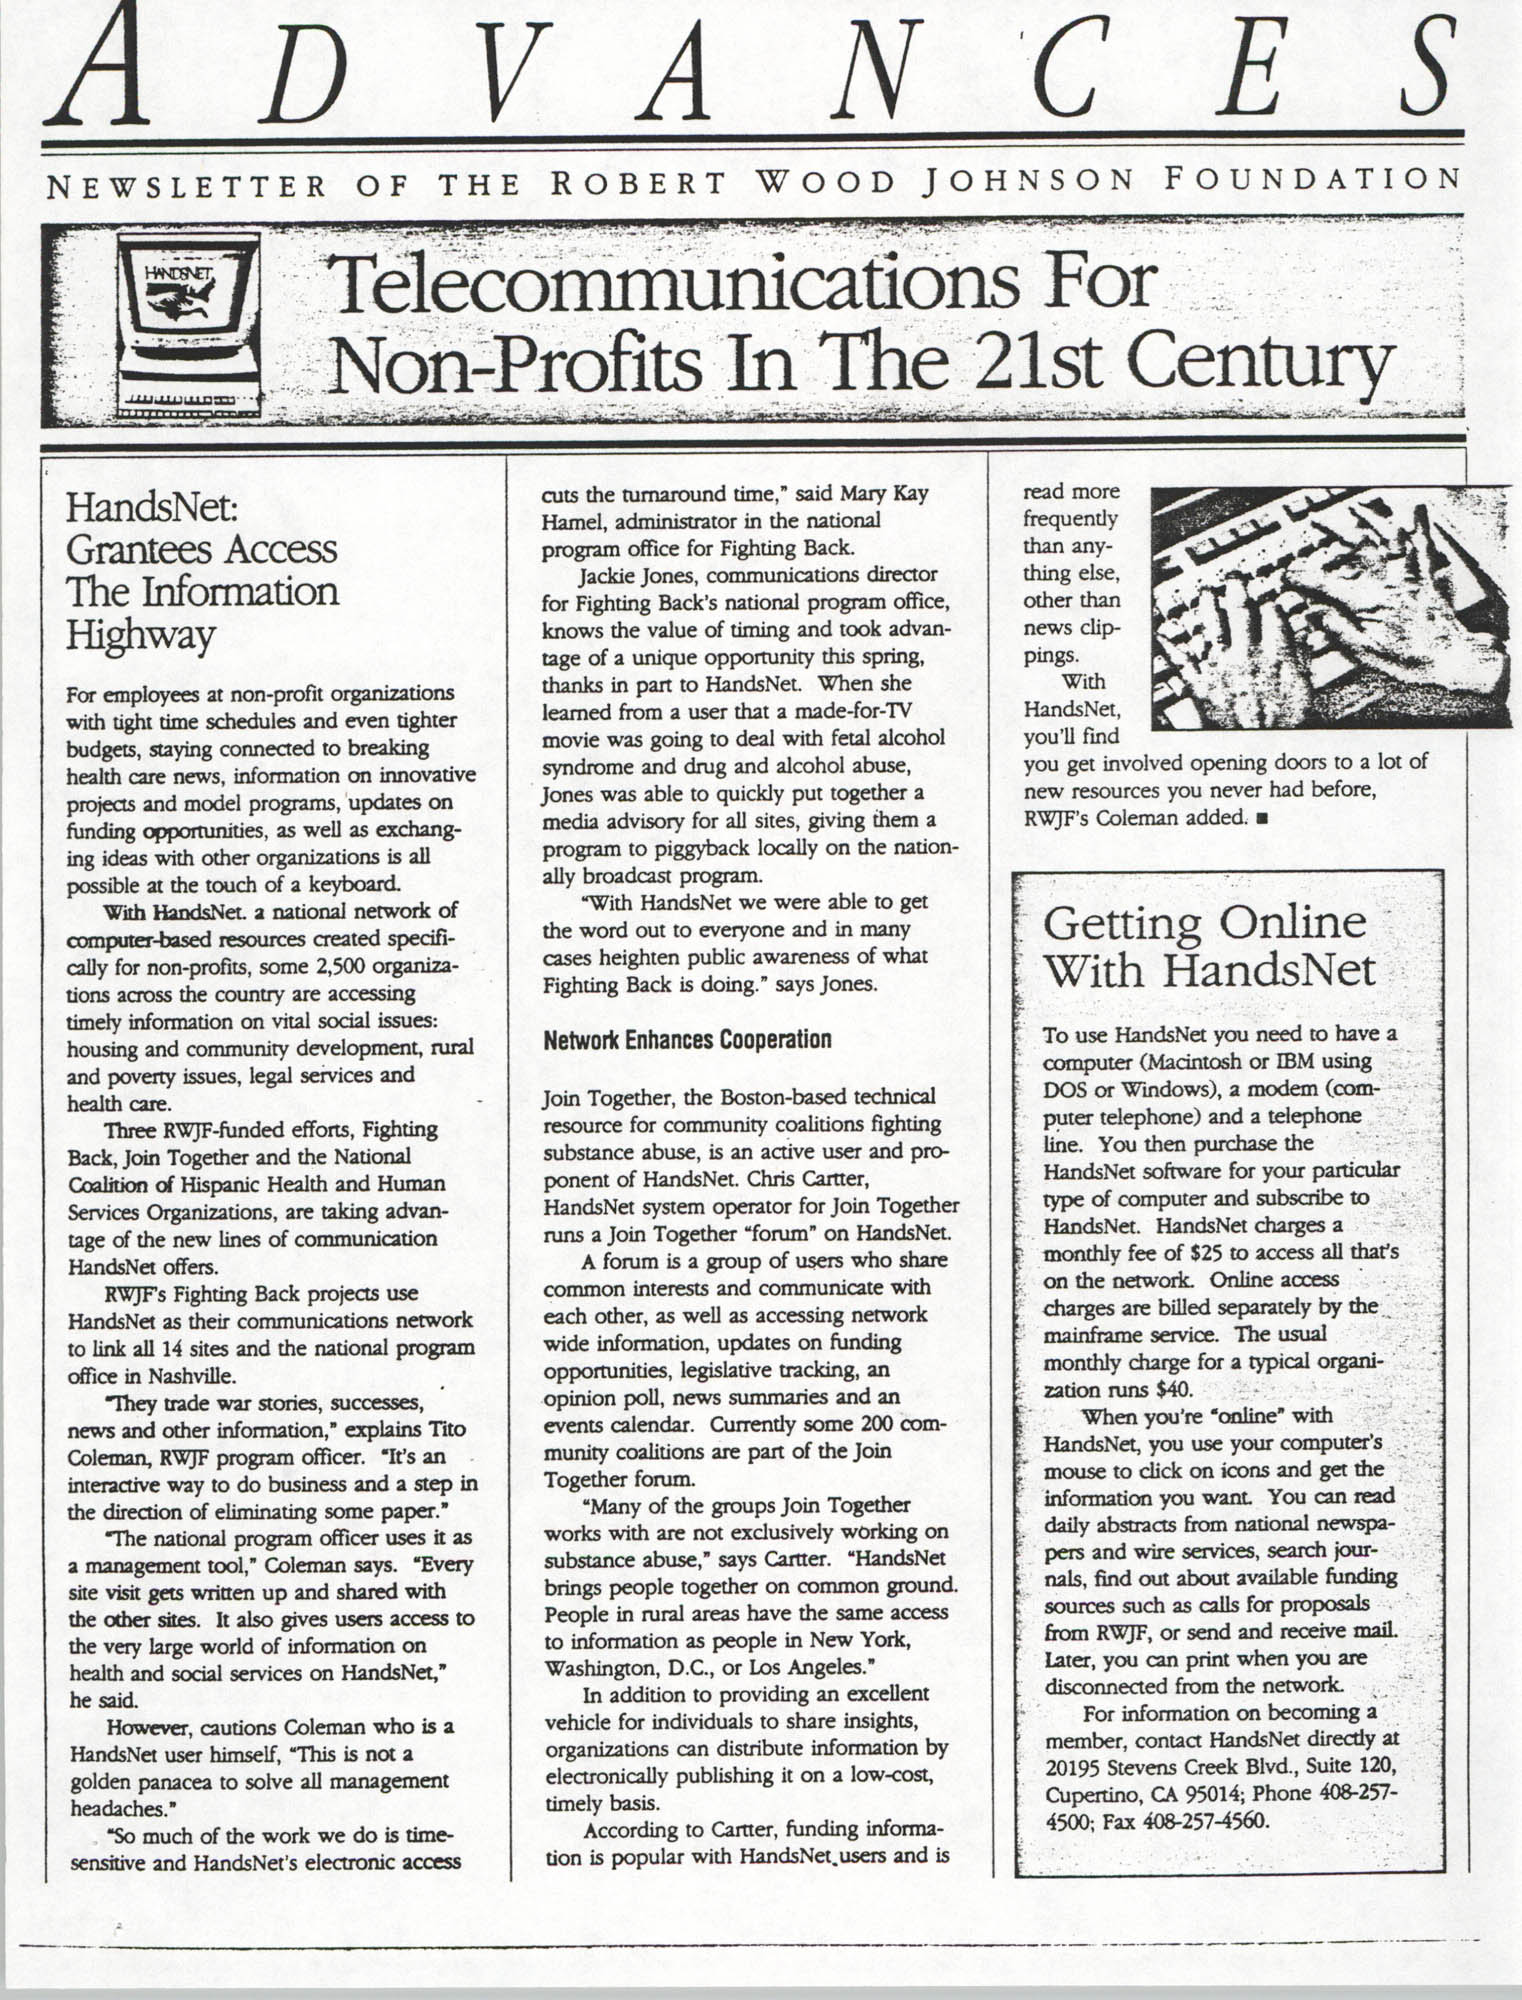 Developing an Agenda for the Information Superhighway, Anthony L. Pharr, May 20, 1994, Page 8